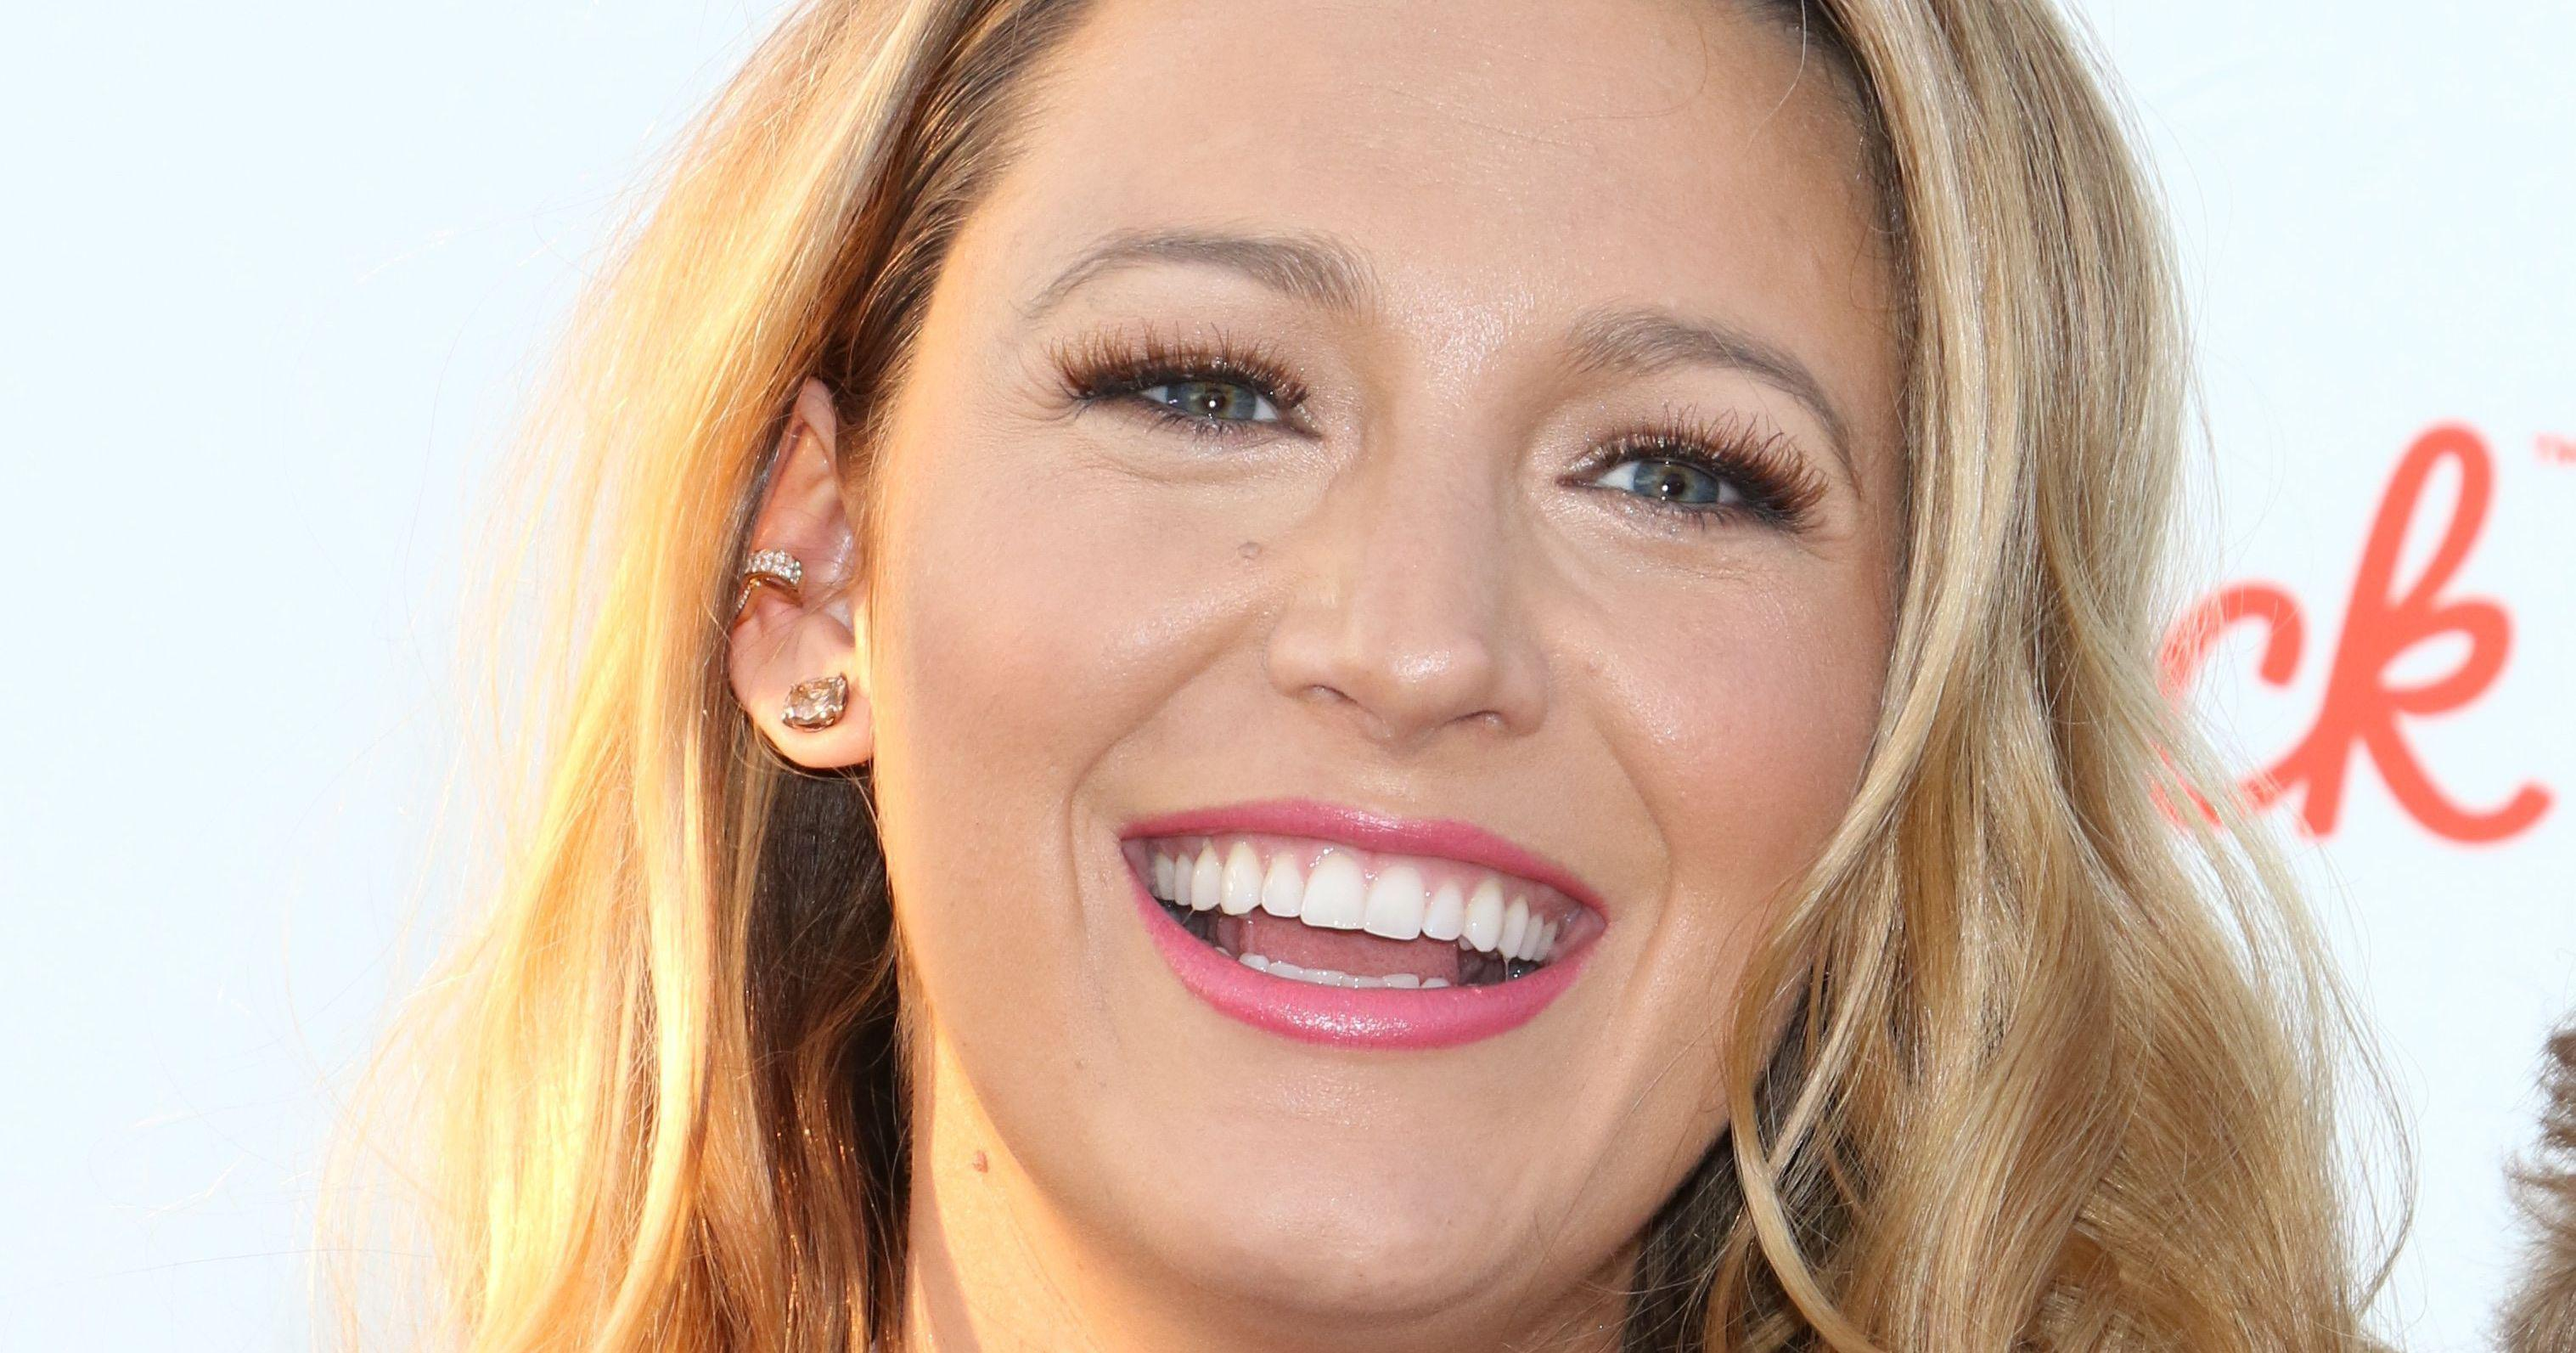 Blake Lively Makes Fun Of Her Cheerleading Past Blake Lively